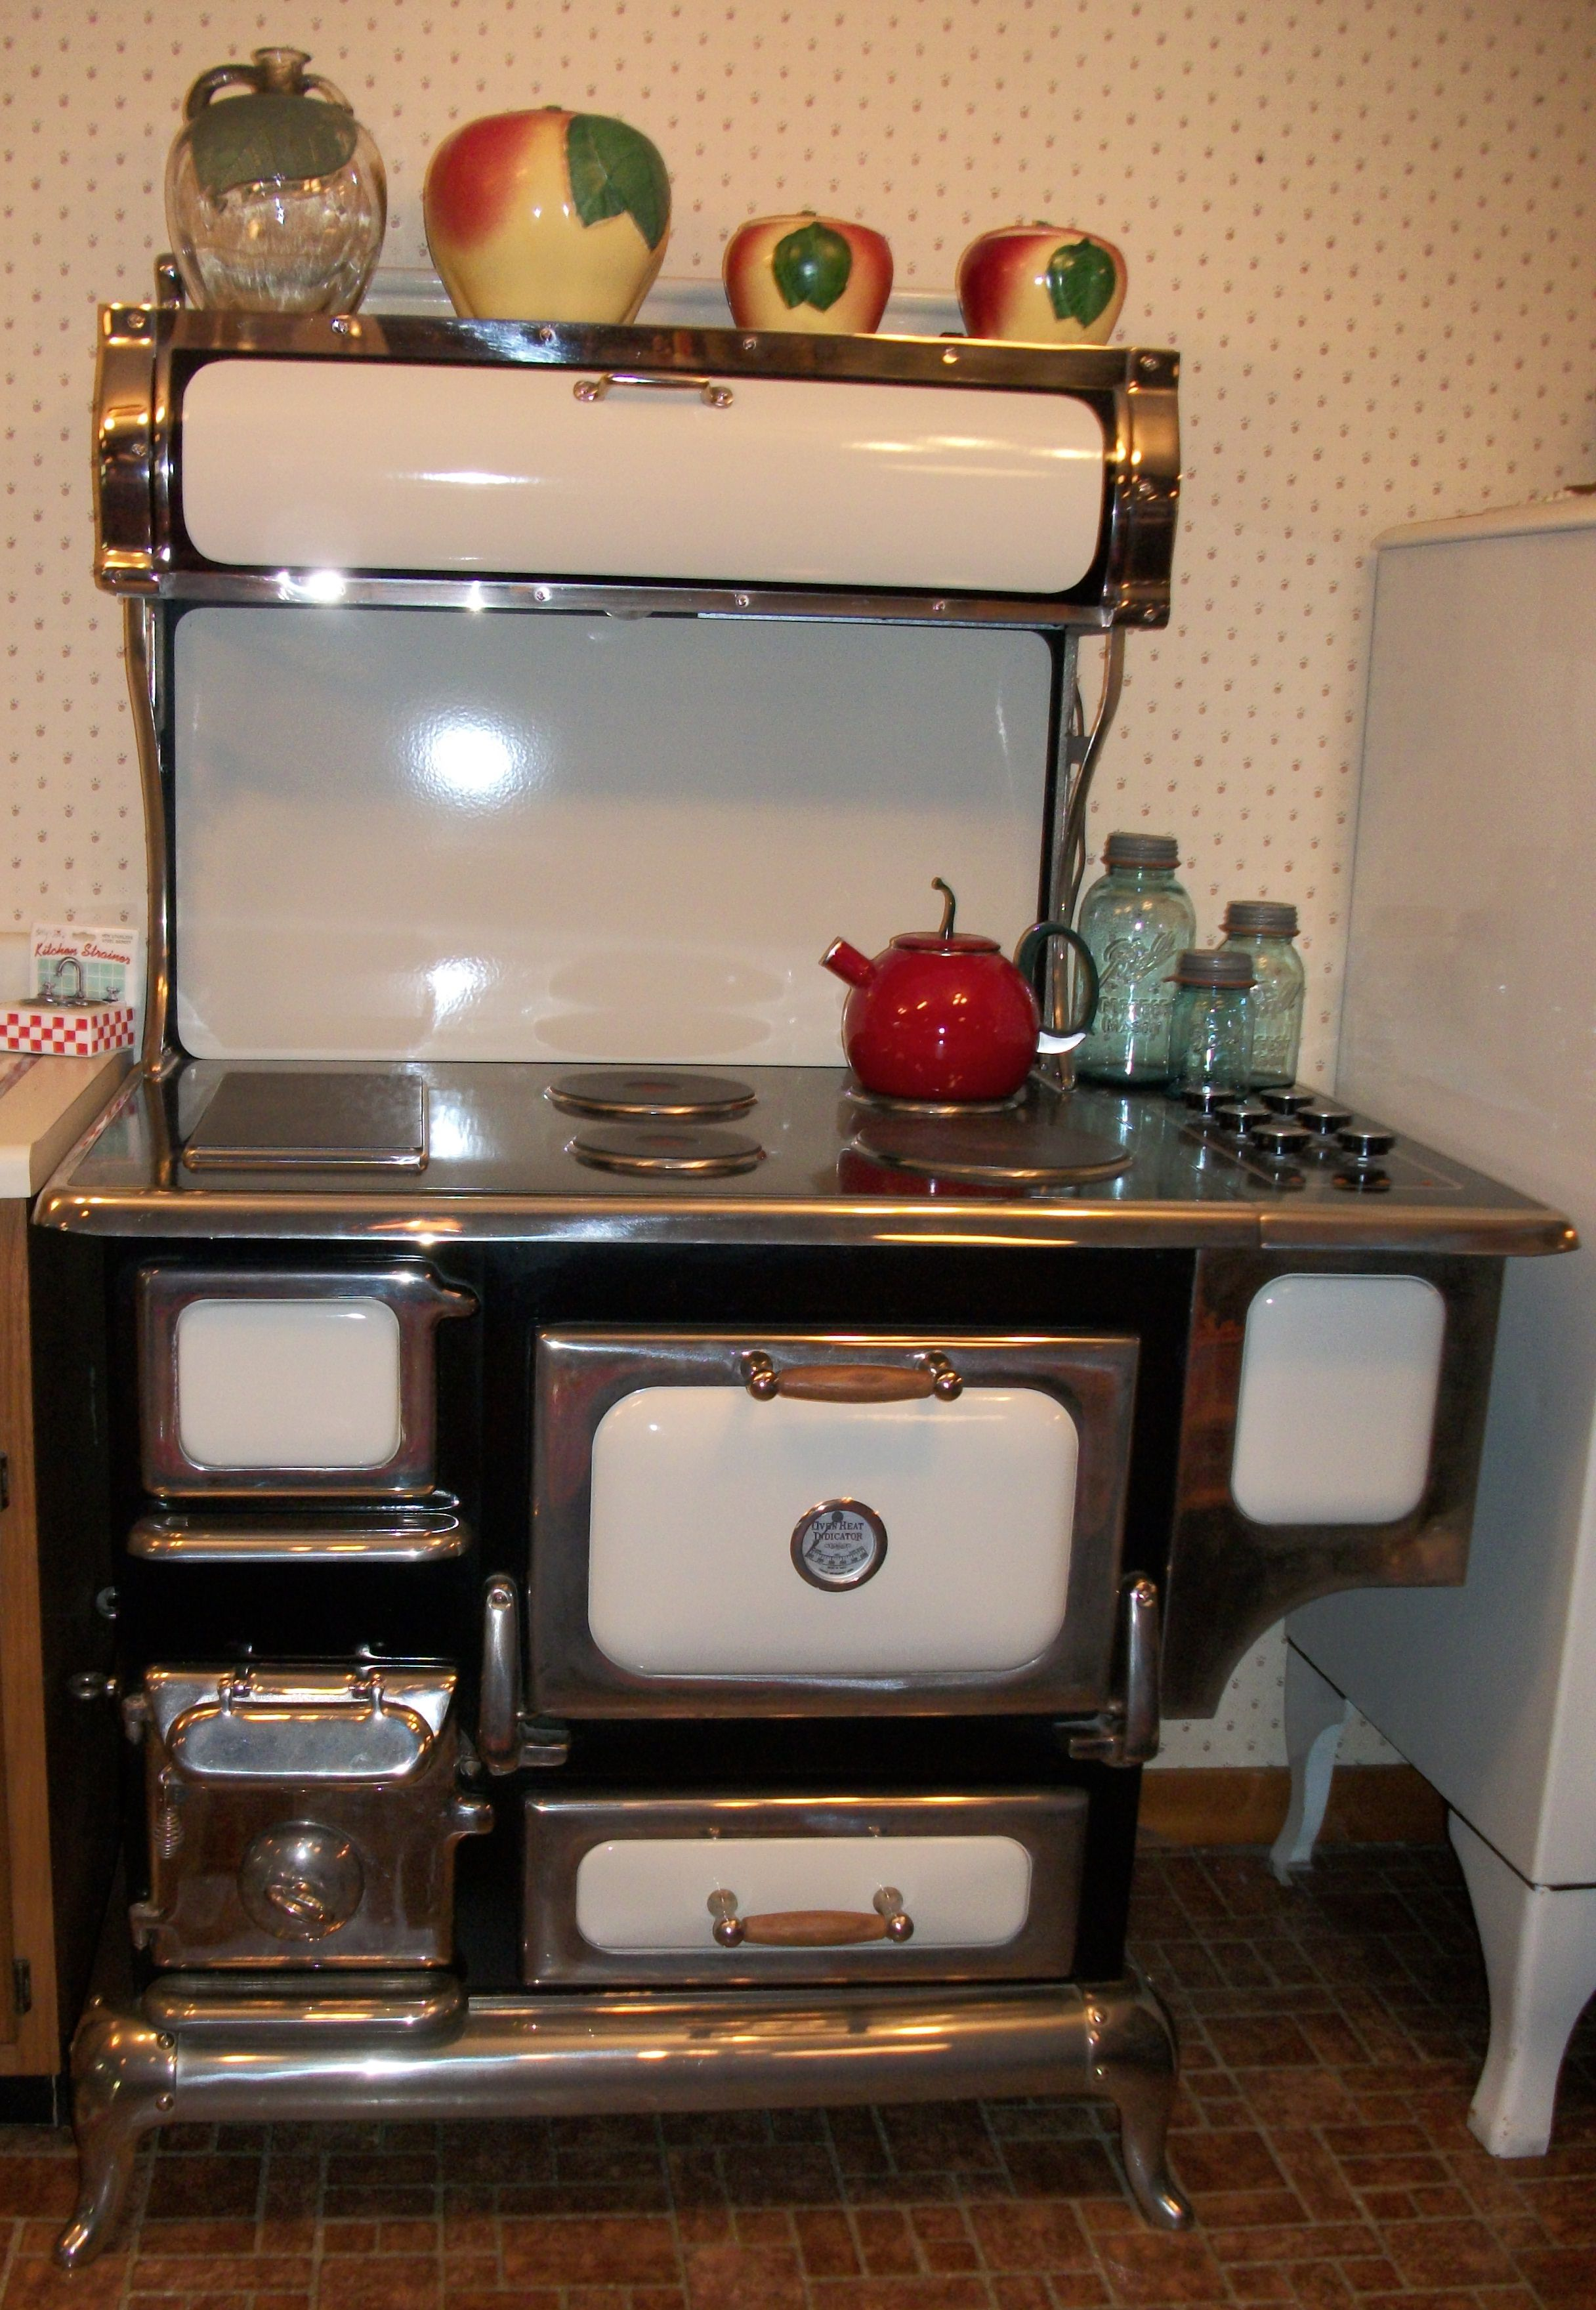 Antique Looking Kitchen Appliances Wood Burning Cook Stove Hints Love The Warming Drawer Above And